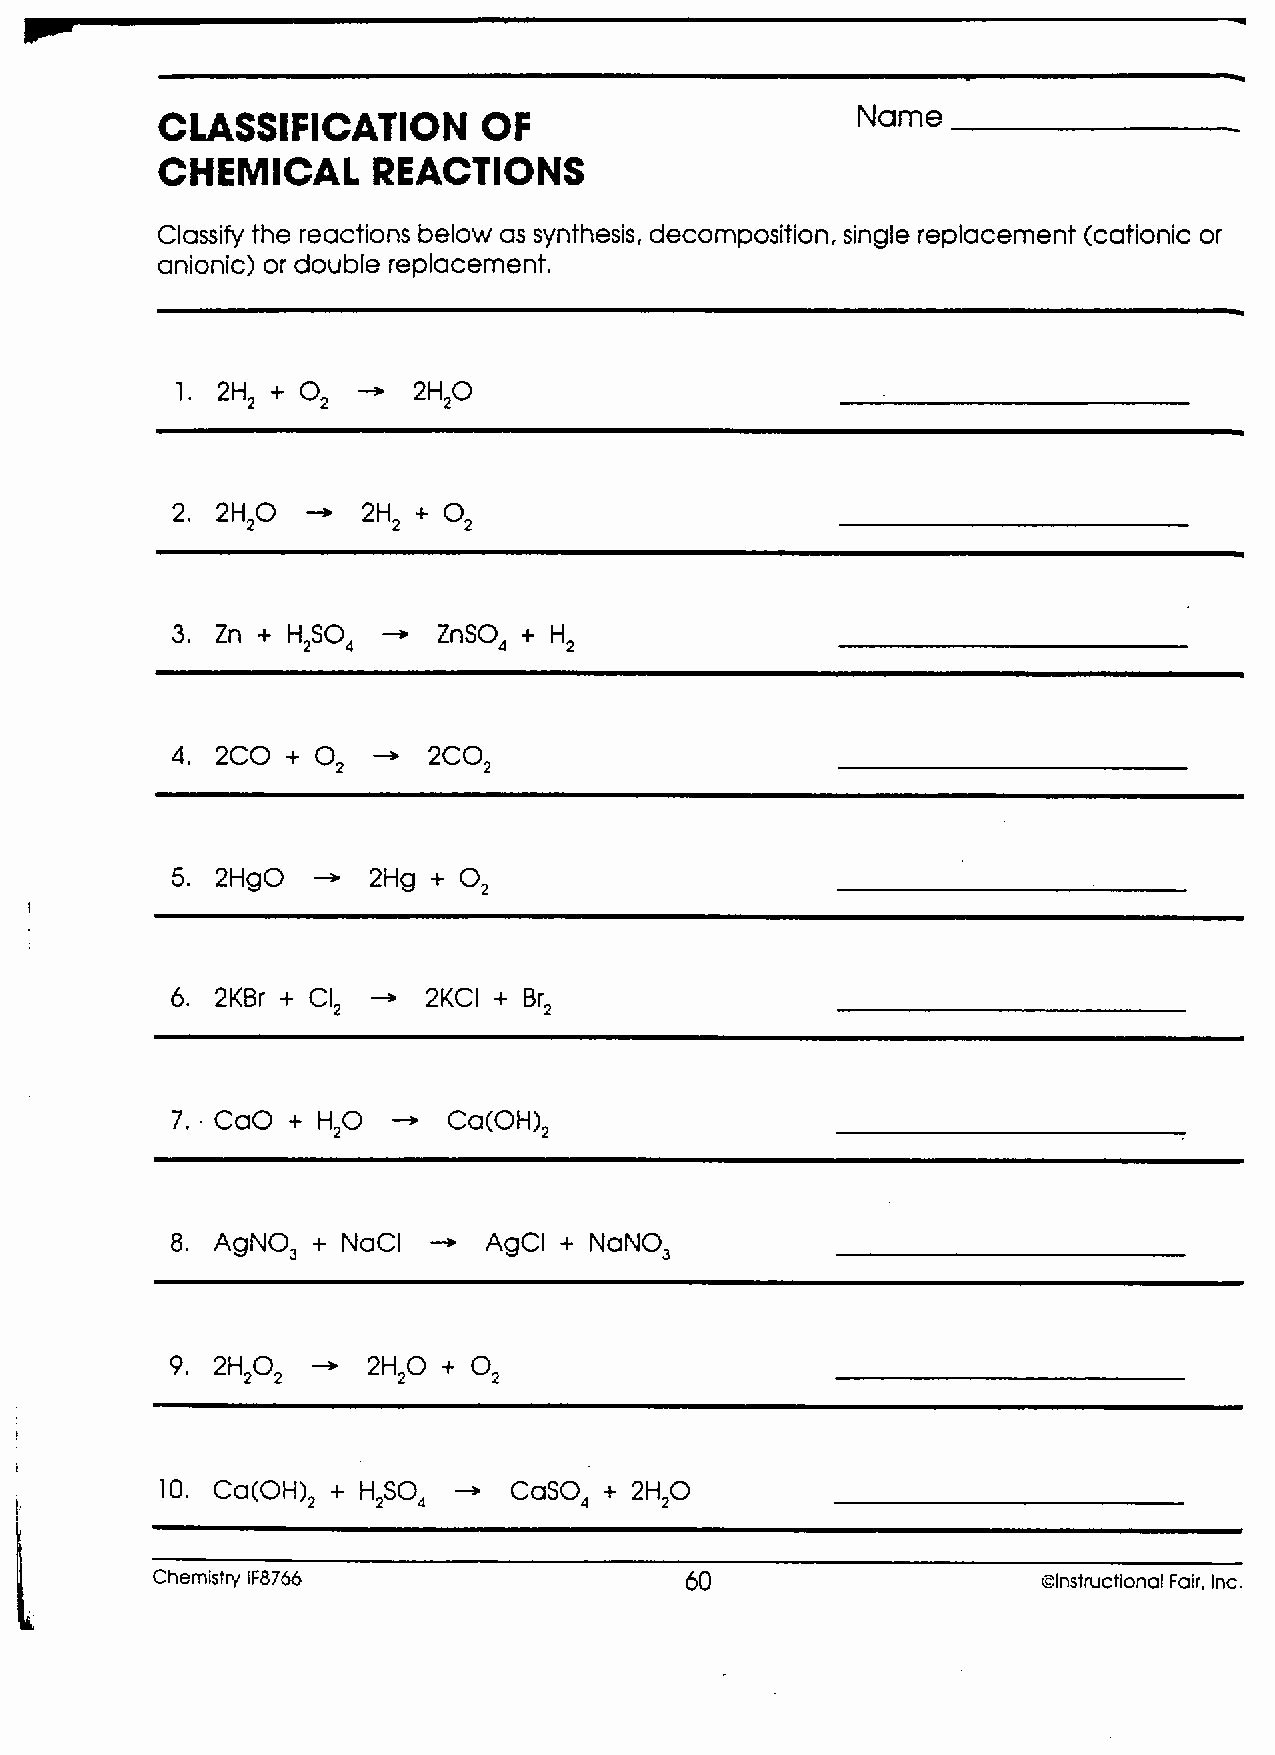 Chemical Reactions Types Worksheet New Chemistry Ia Mr Phelps Big Rapids Hs